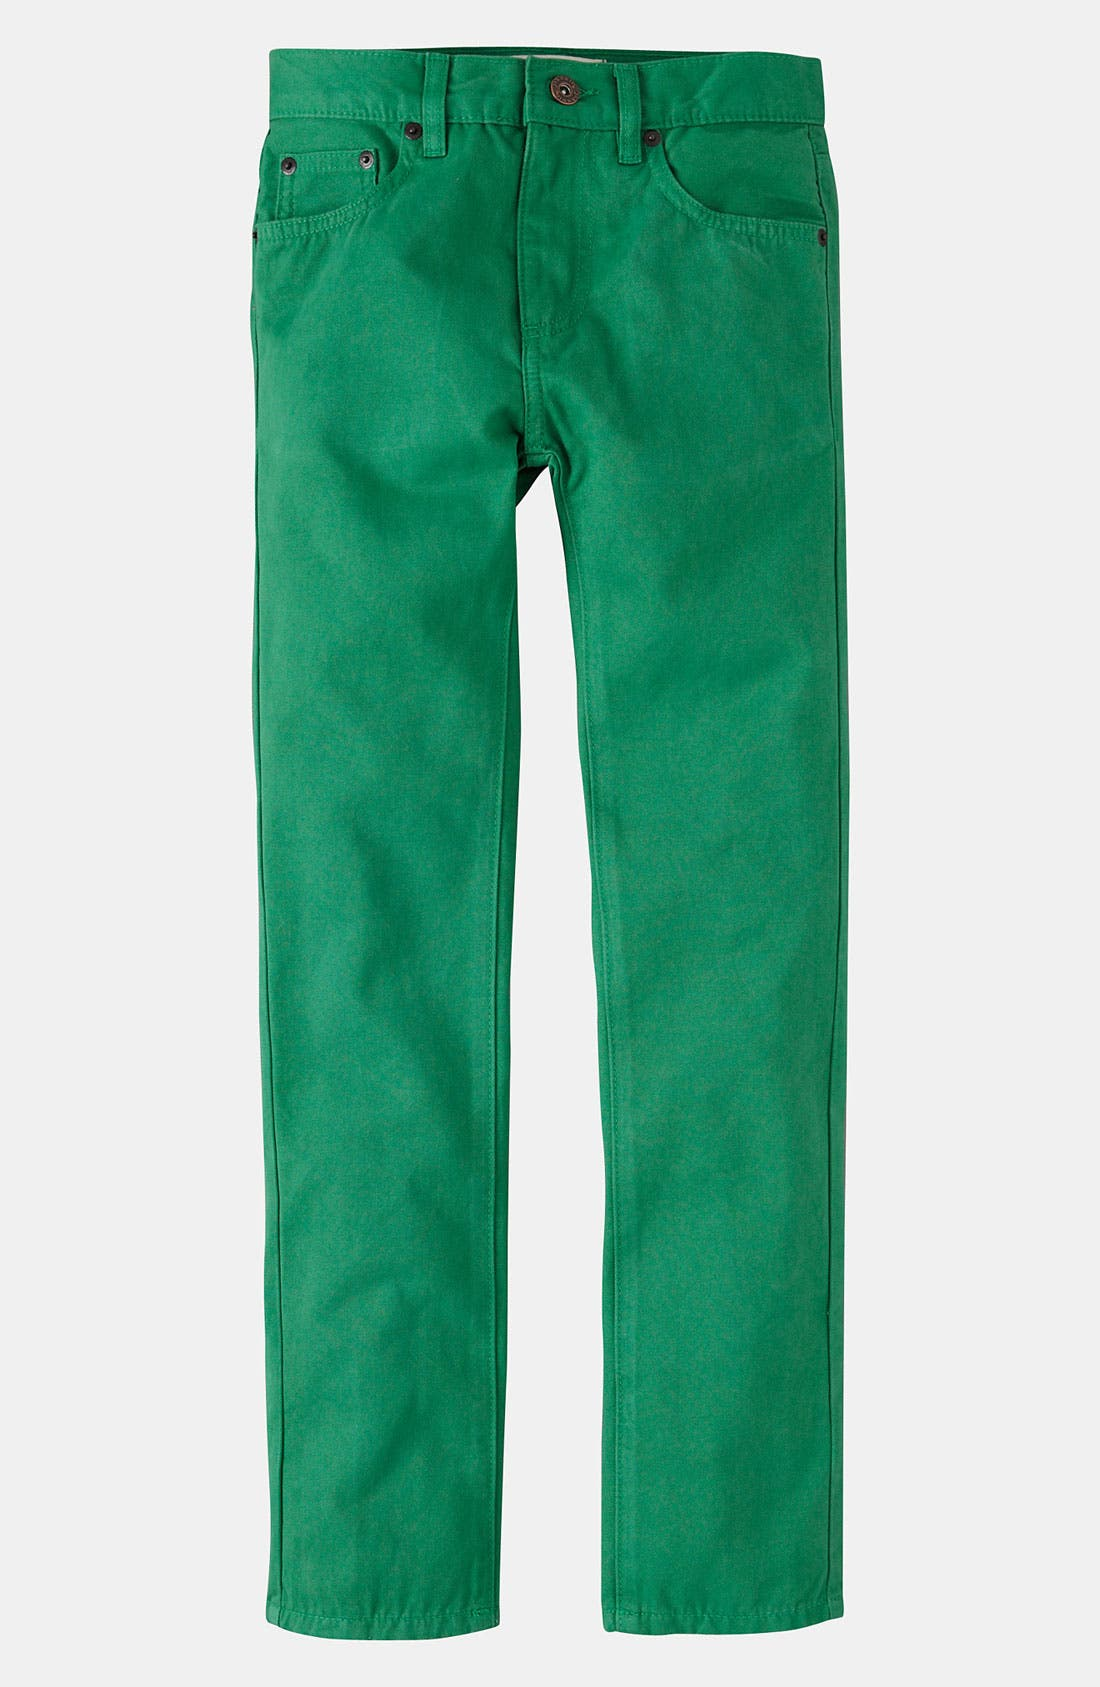 Alternate Image 1 Selected - Johnnie b Slim Fit Pants (Big Boys)